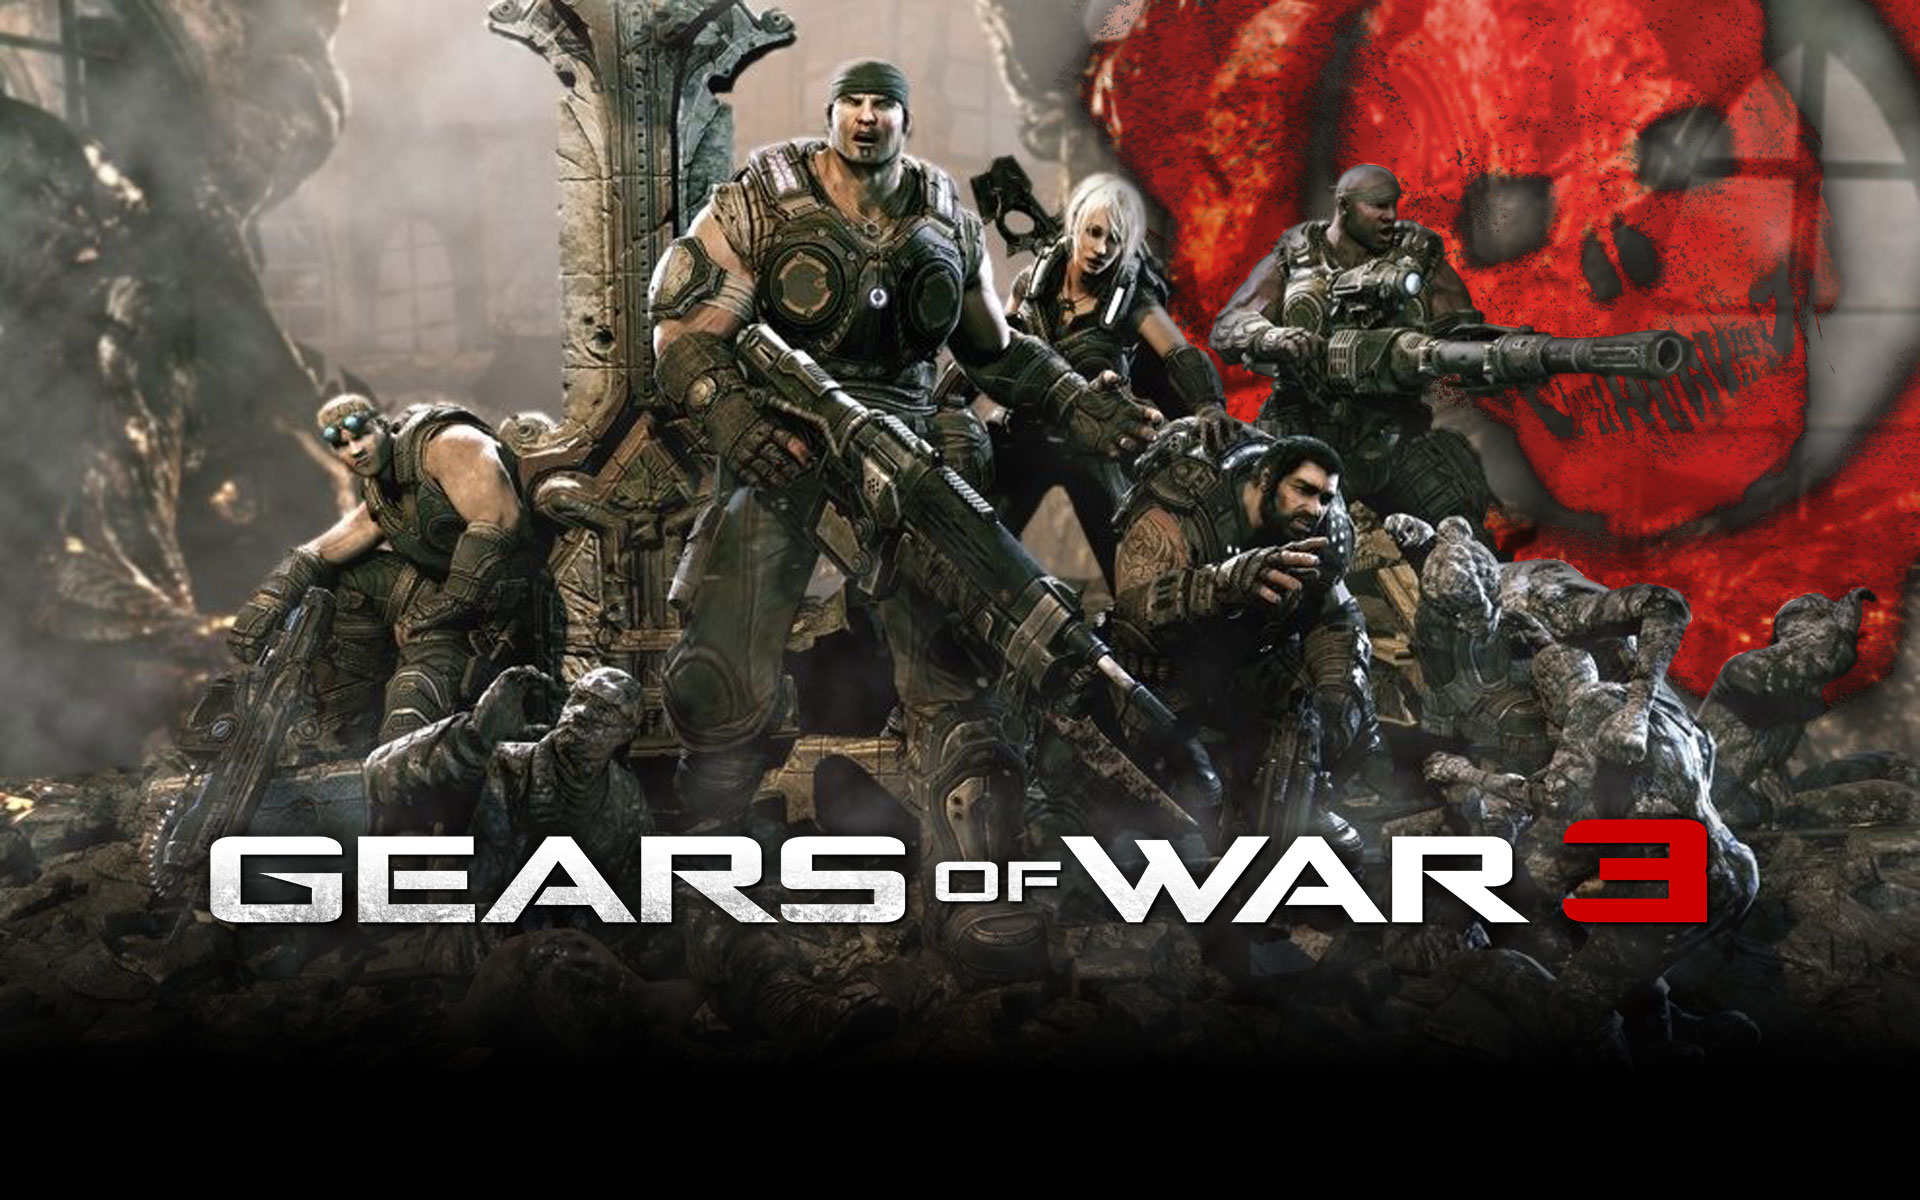 200+ Epic Games images | epic games, gears of war, gears ...